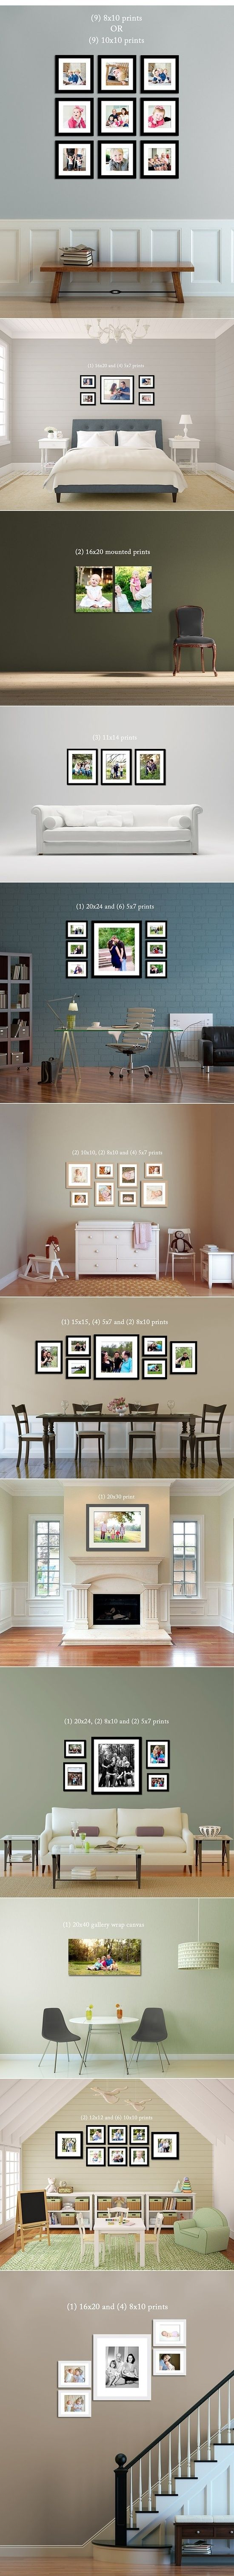 Picture hanging ideas. Clean and organized. ♥!!